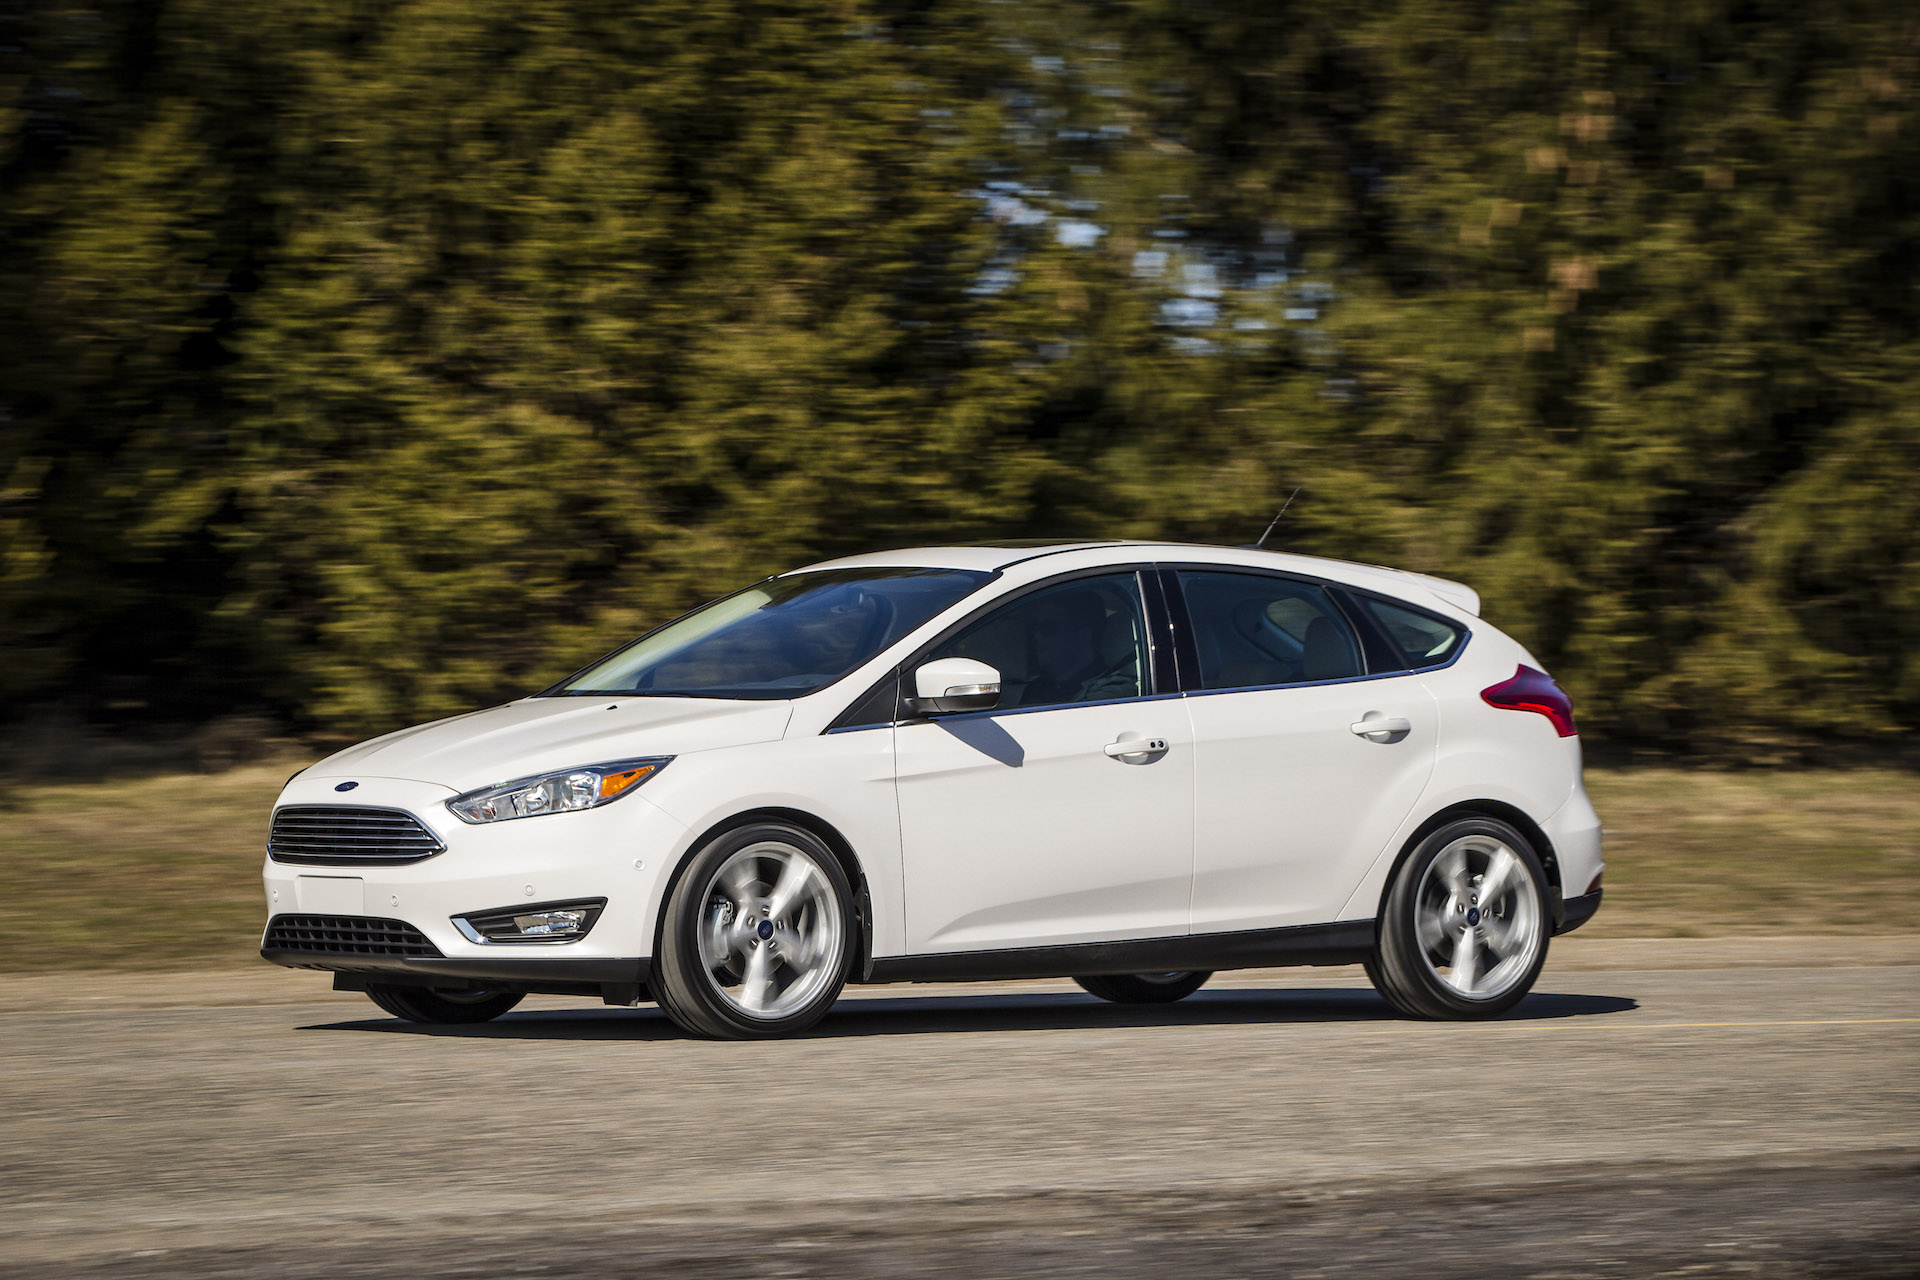 Three-cylinder powered Ford Focus recalled for clutch slip and transmission fluid leak